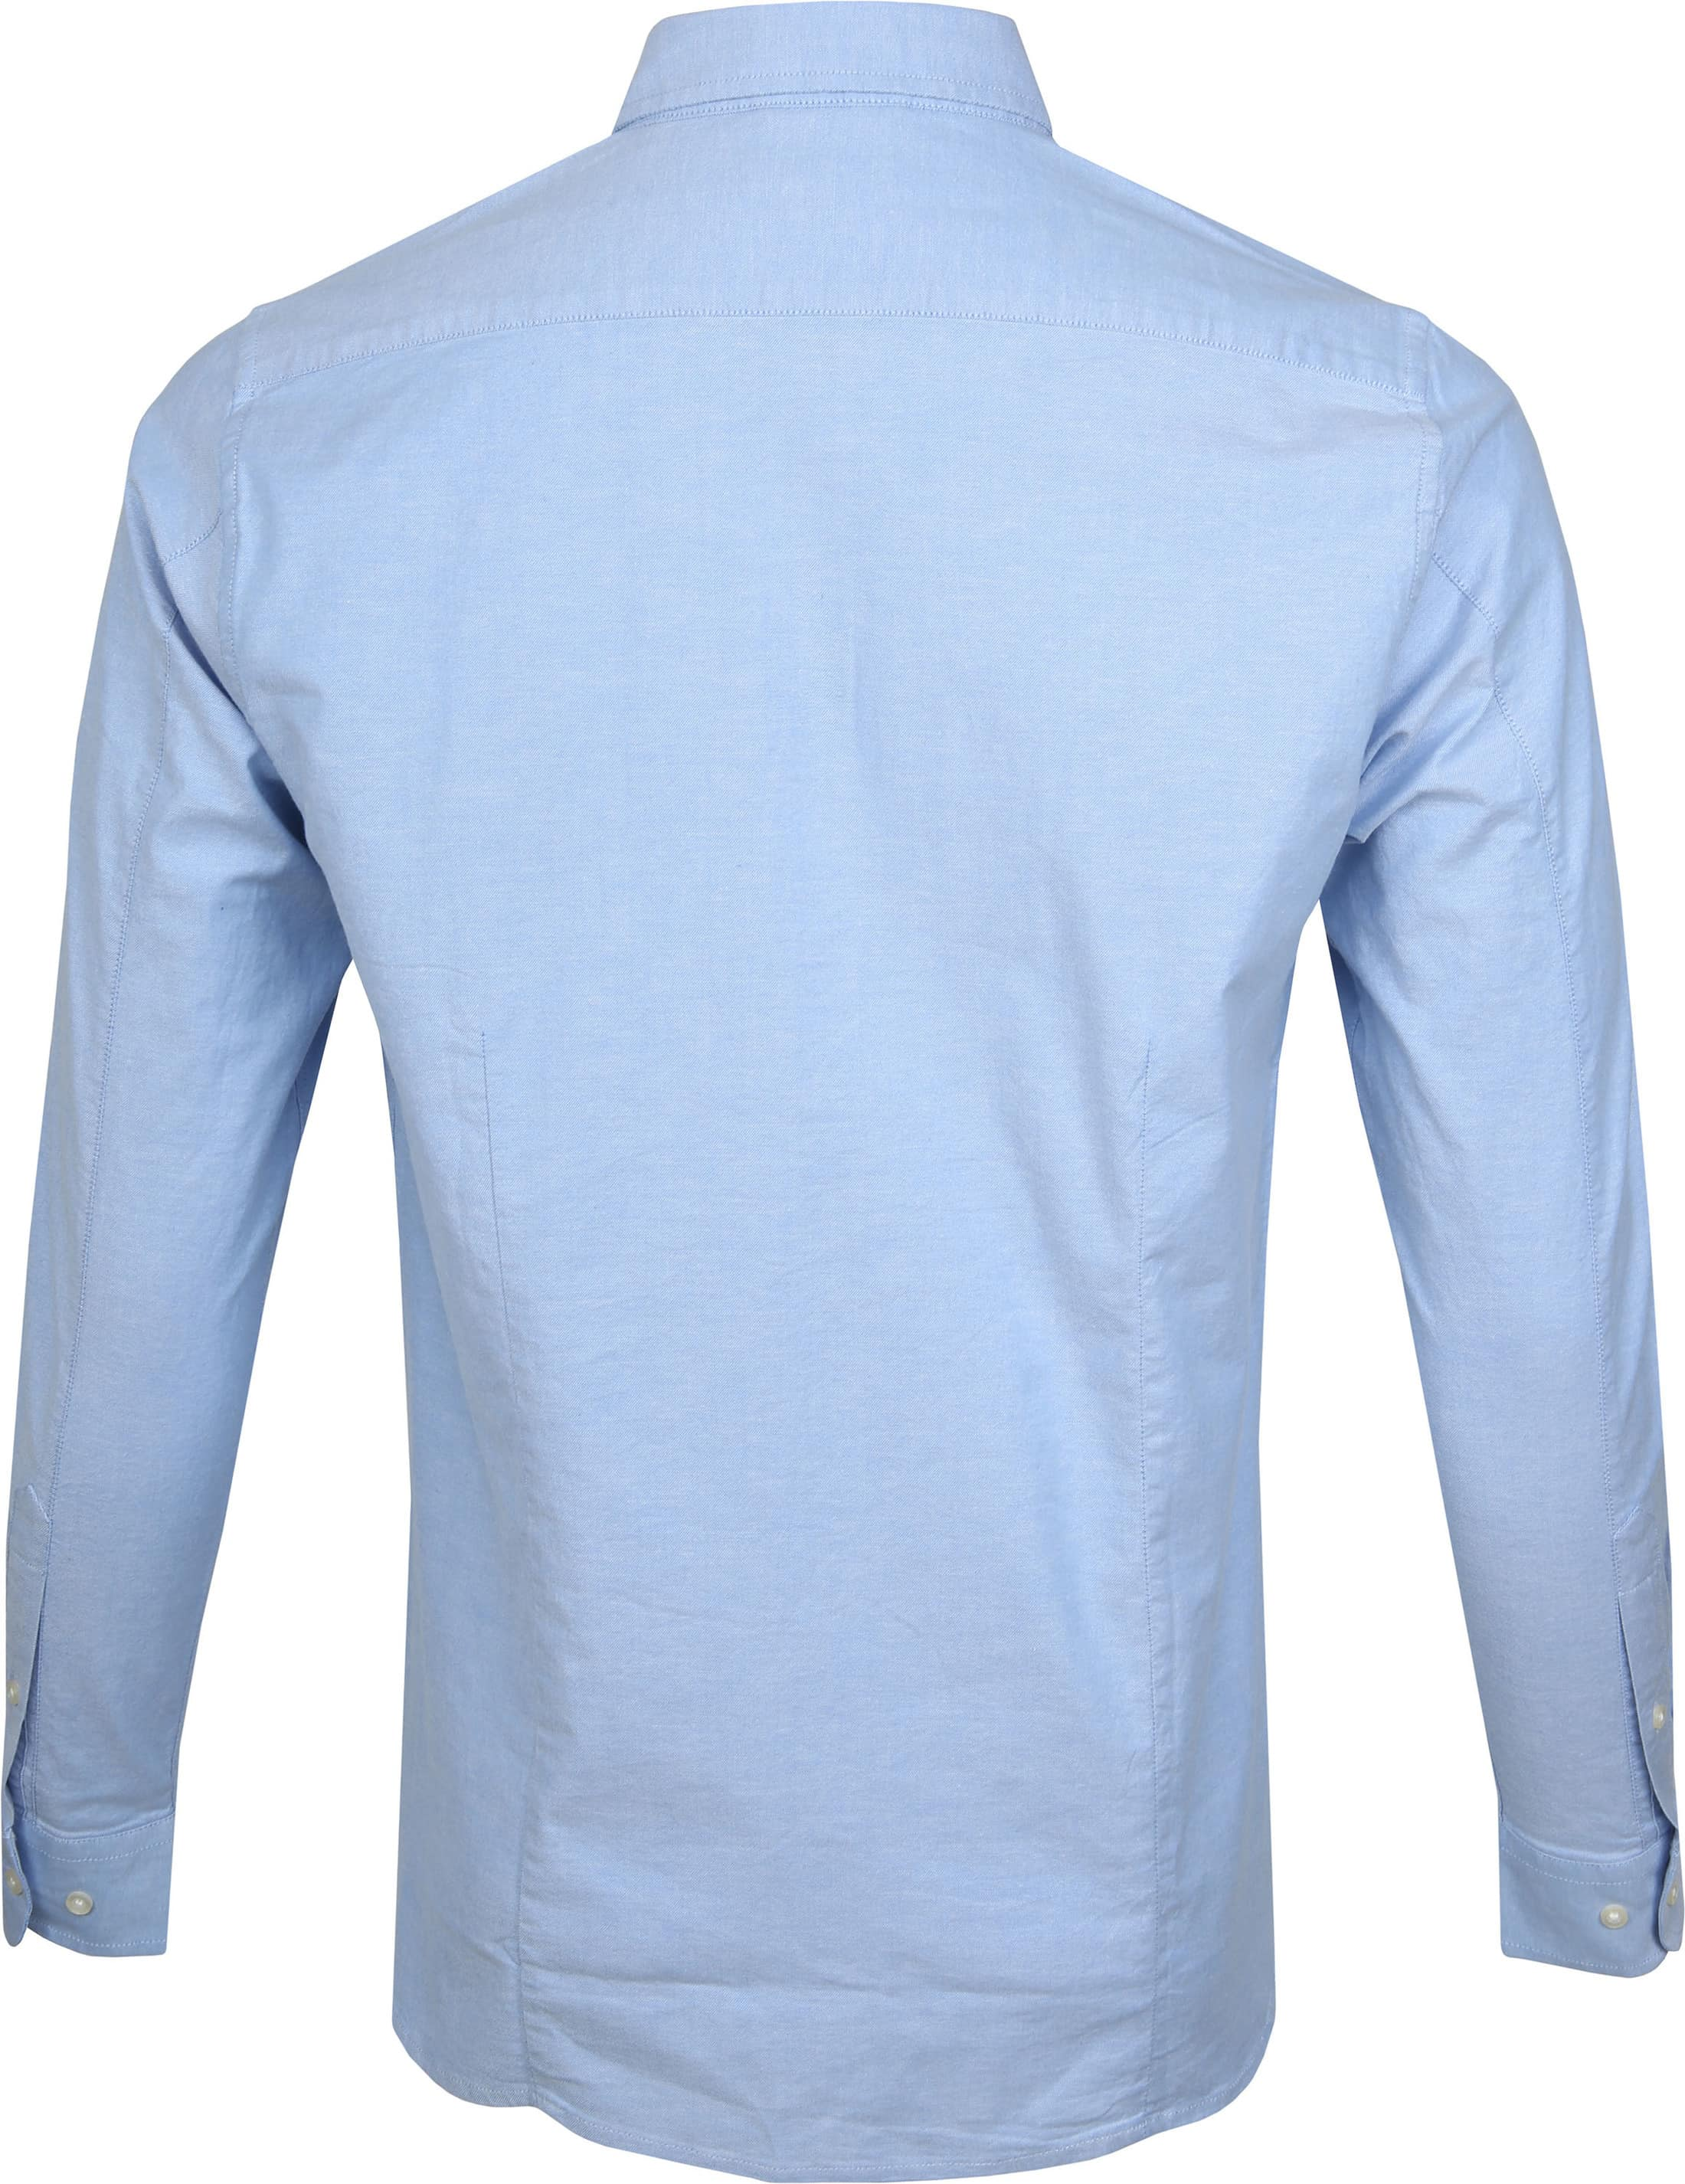 KnowledgeCotton Apparel Overhemd Blauw